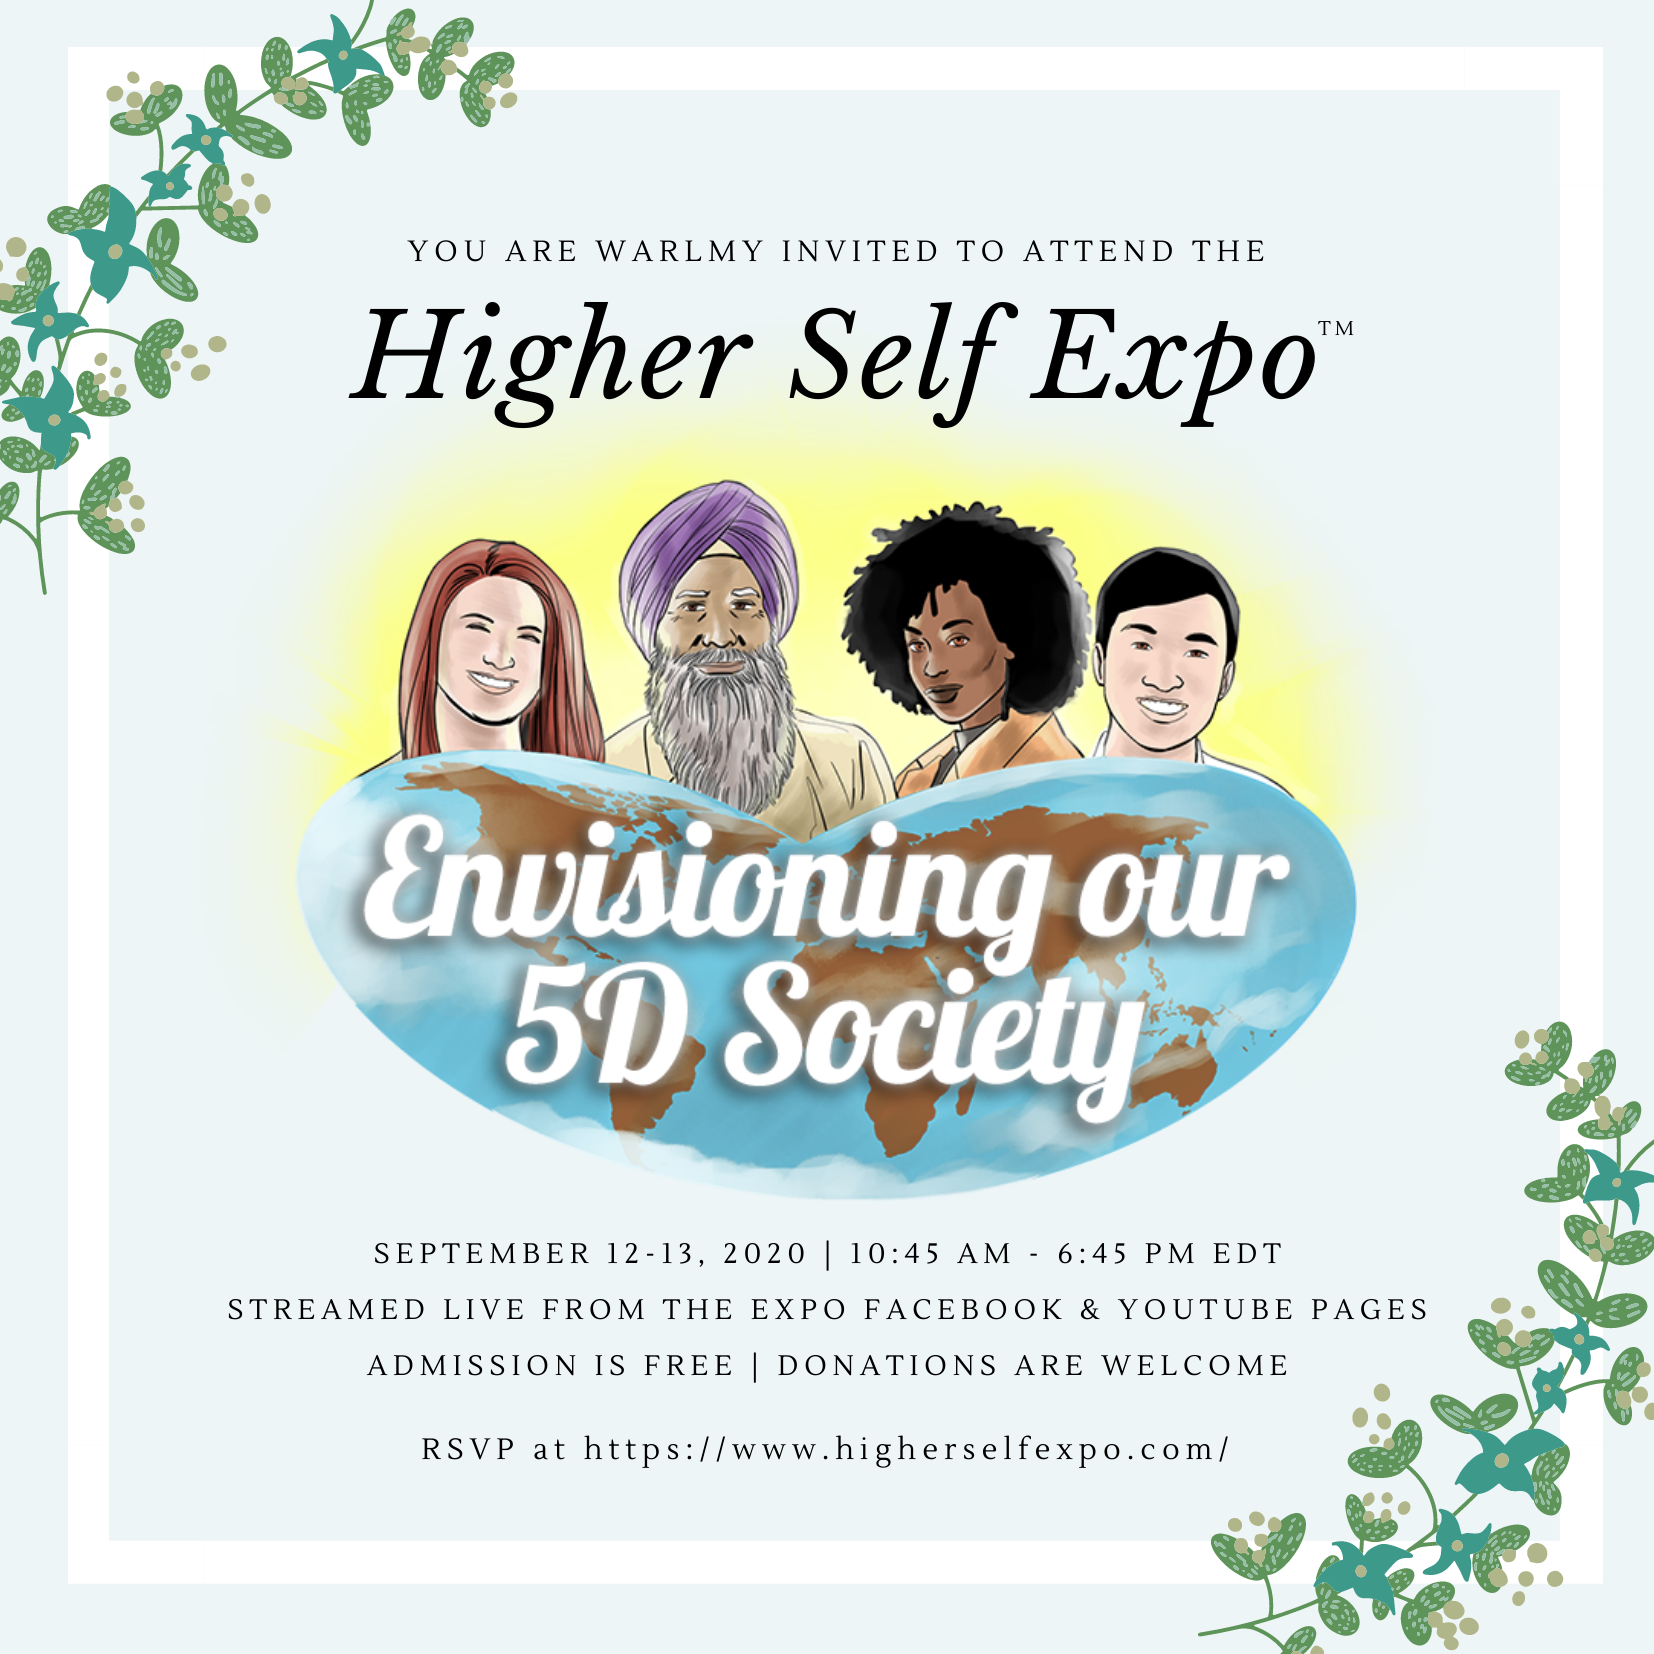 Higher Self Expo Invitation - White